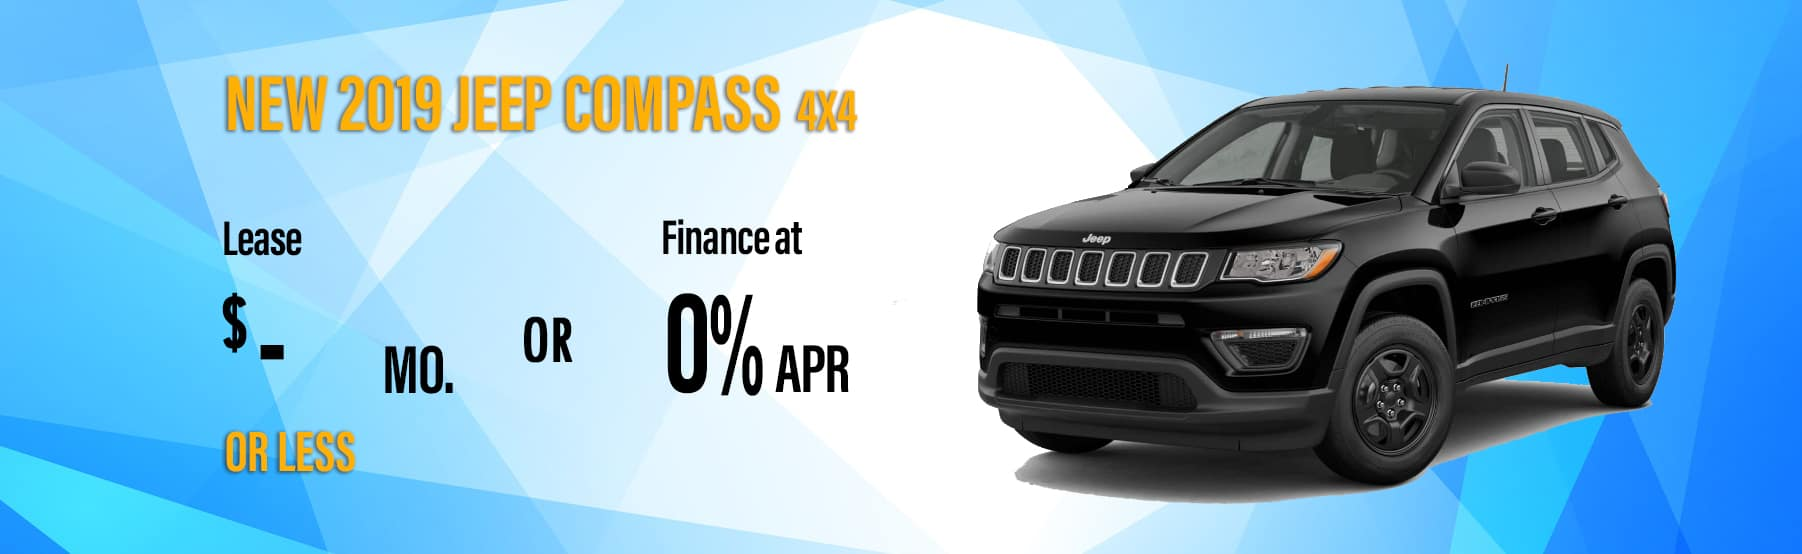 2019 Compass $-/month - Security Dodge Lease & Loan Deals